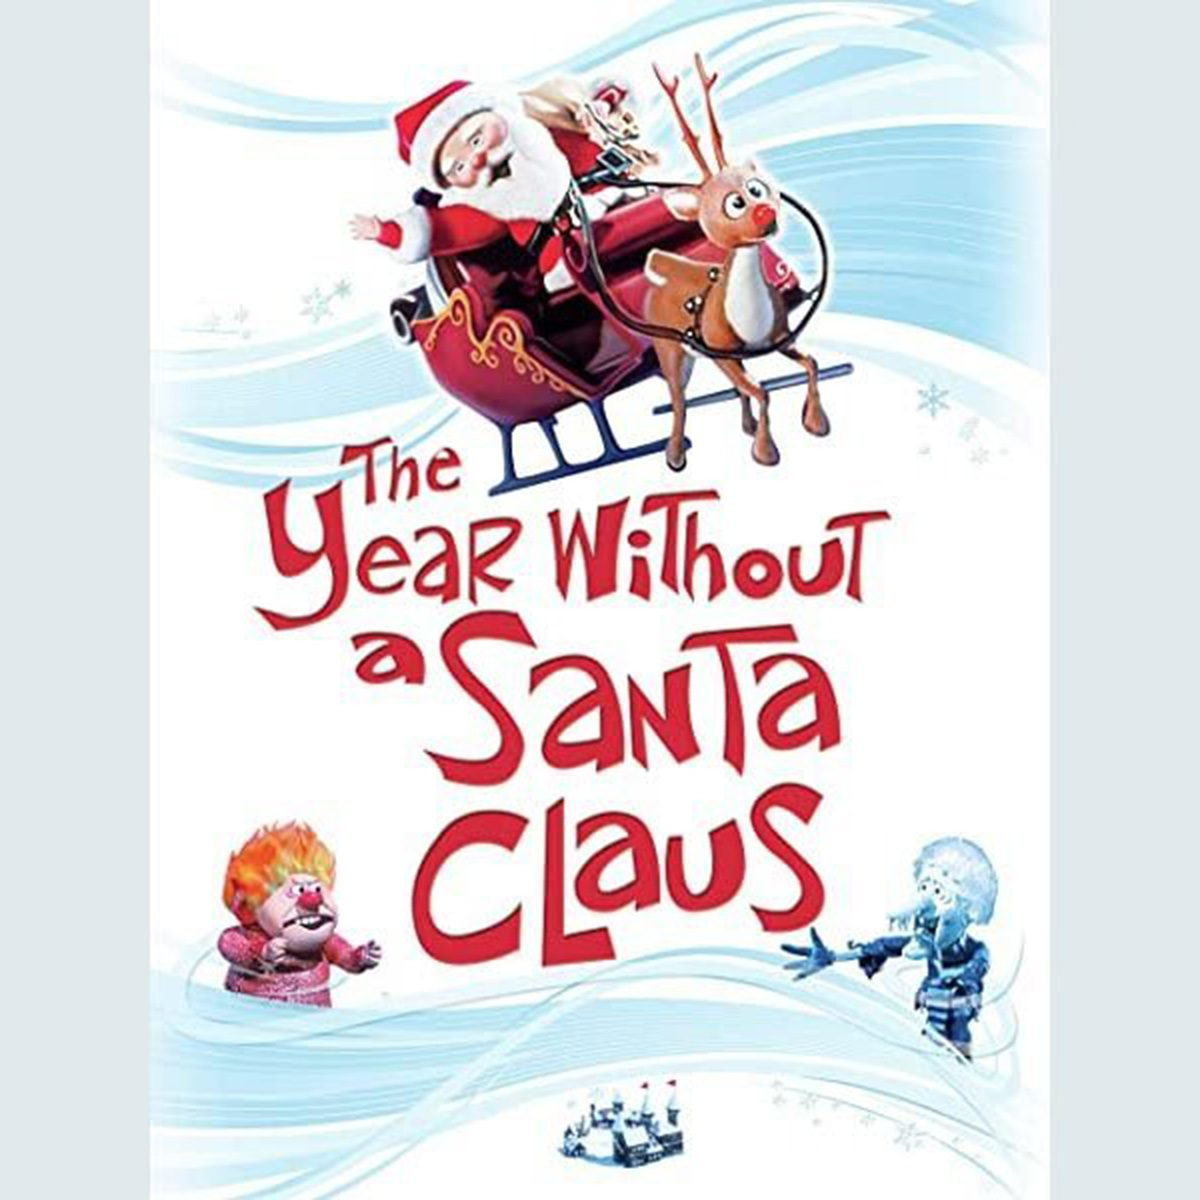 a-year-without-santa-claus